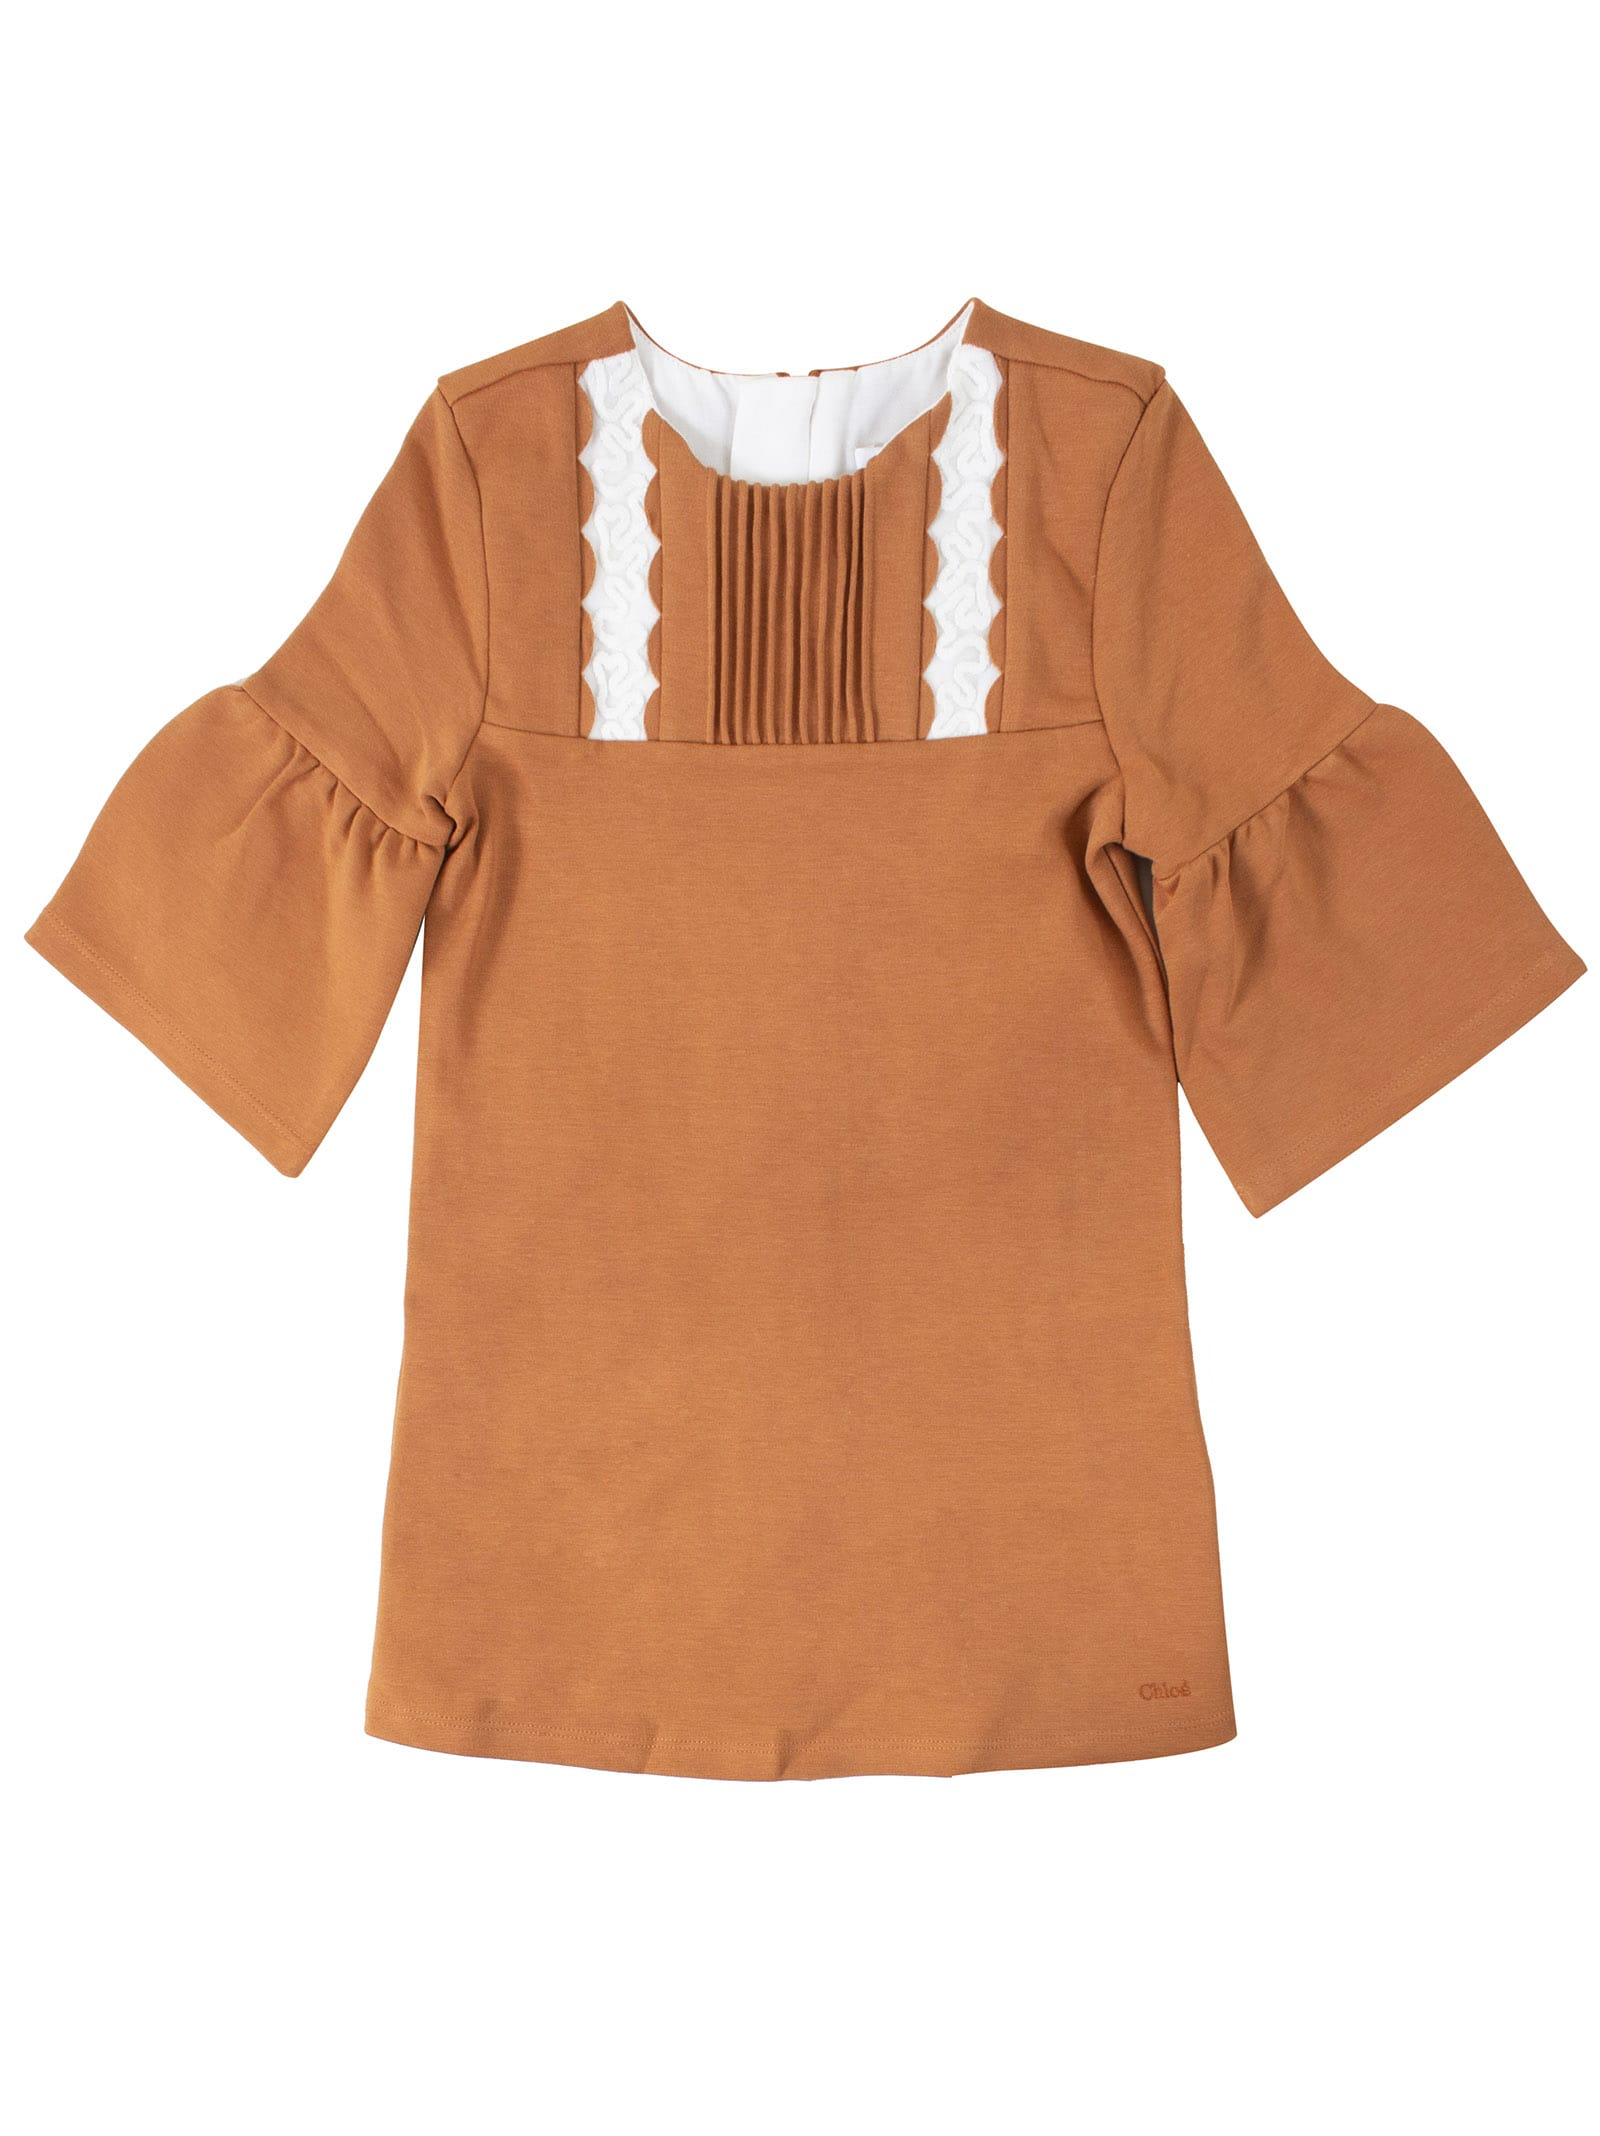 Chloé Dress For Girl